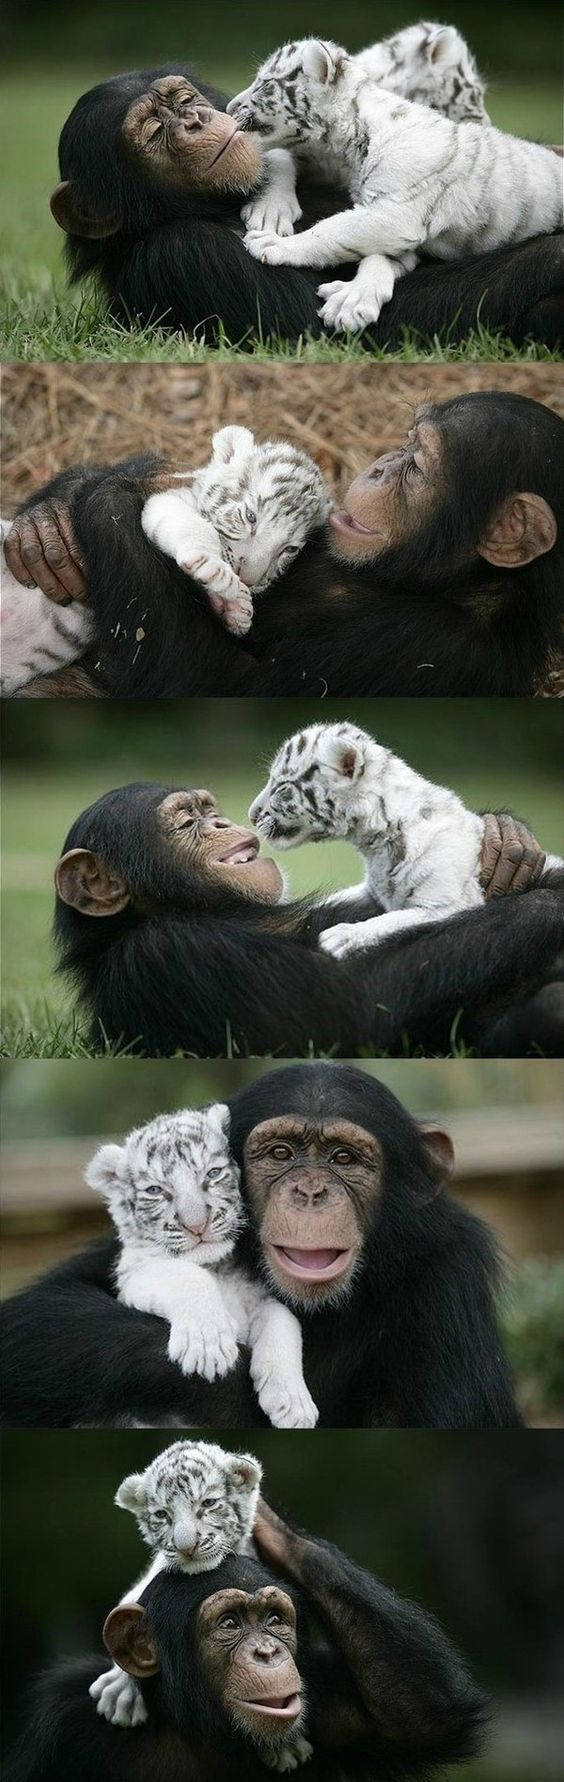 Chimp and baby tiger